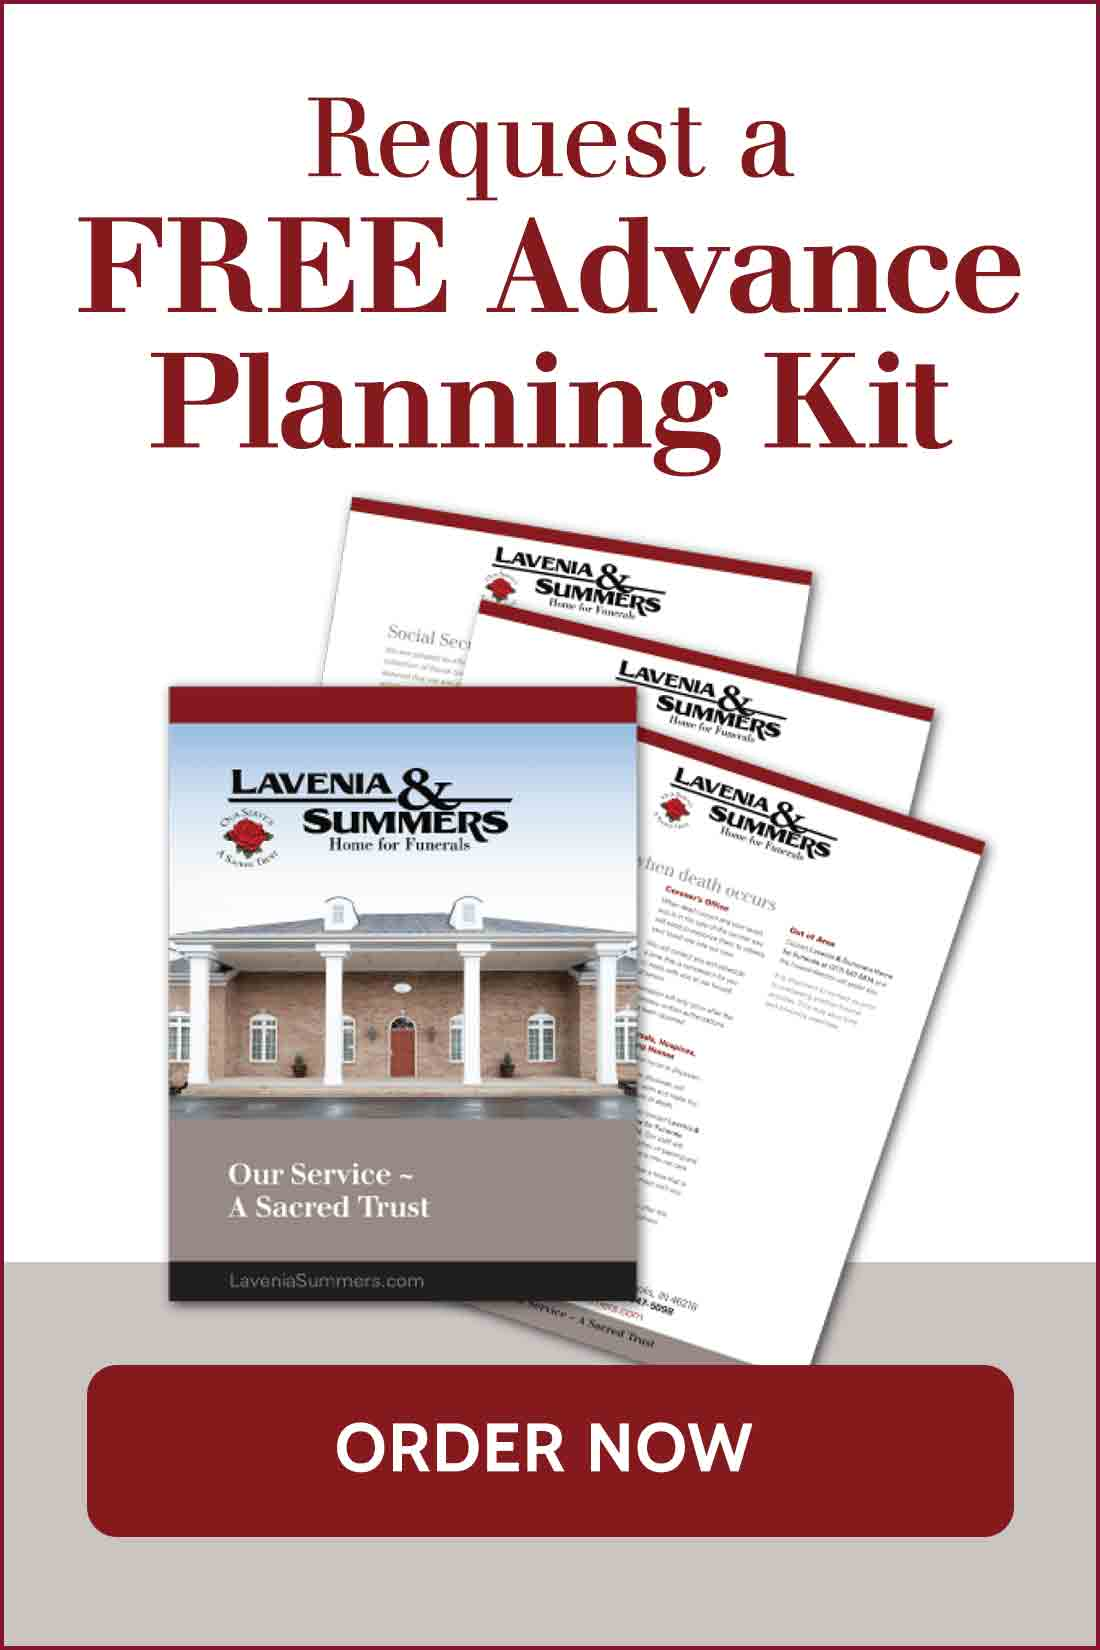 Request a Funeral Planning Kit FREE